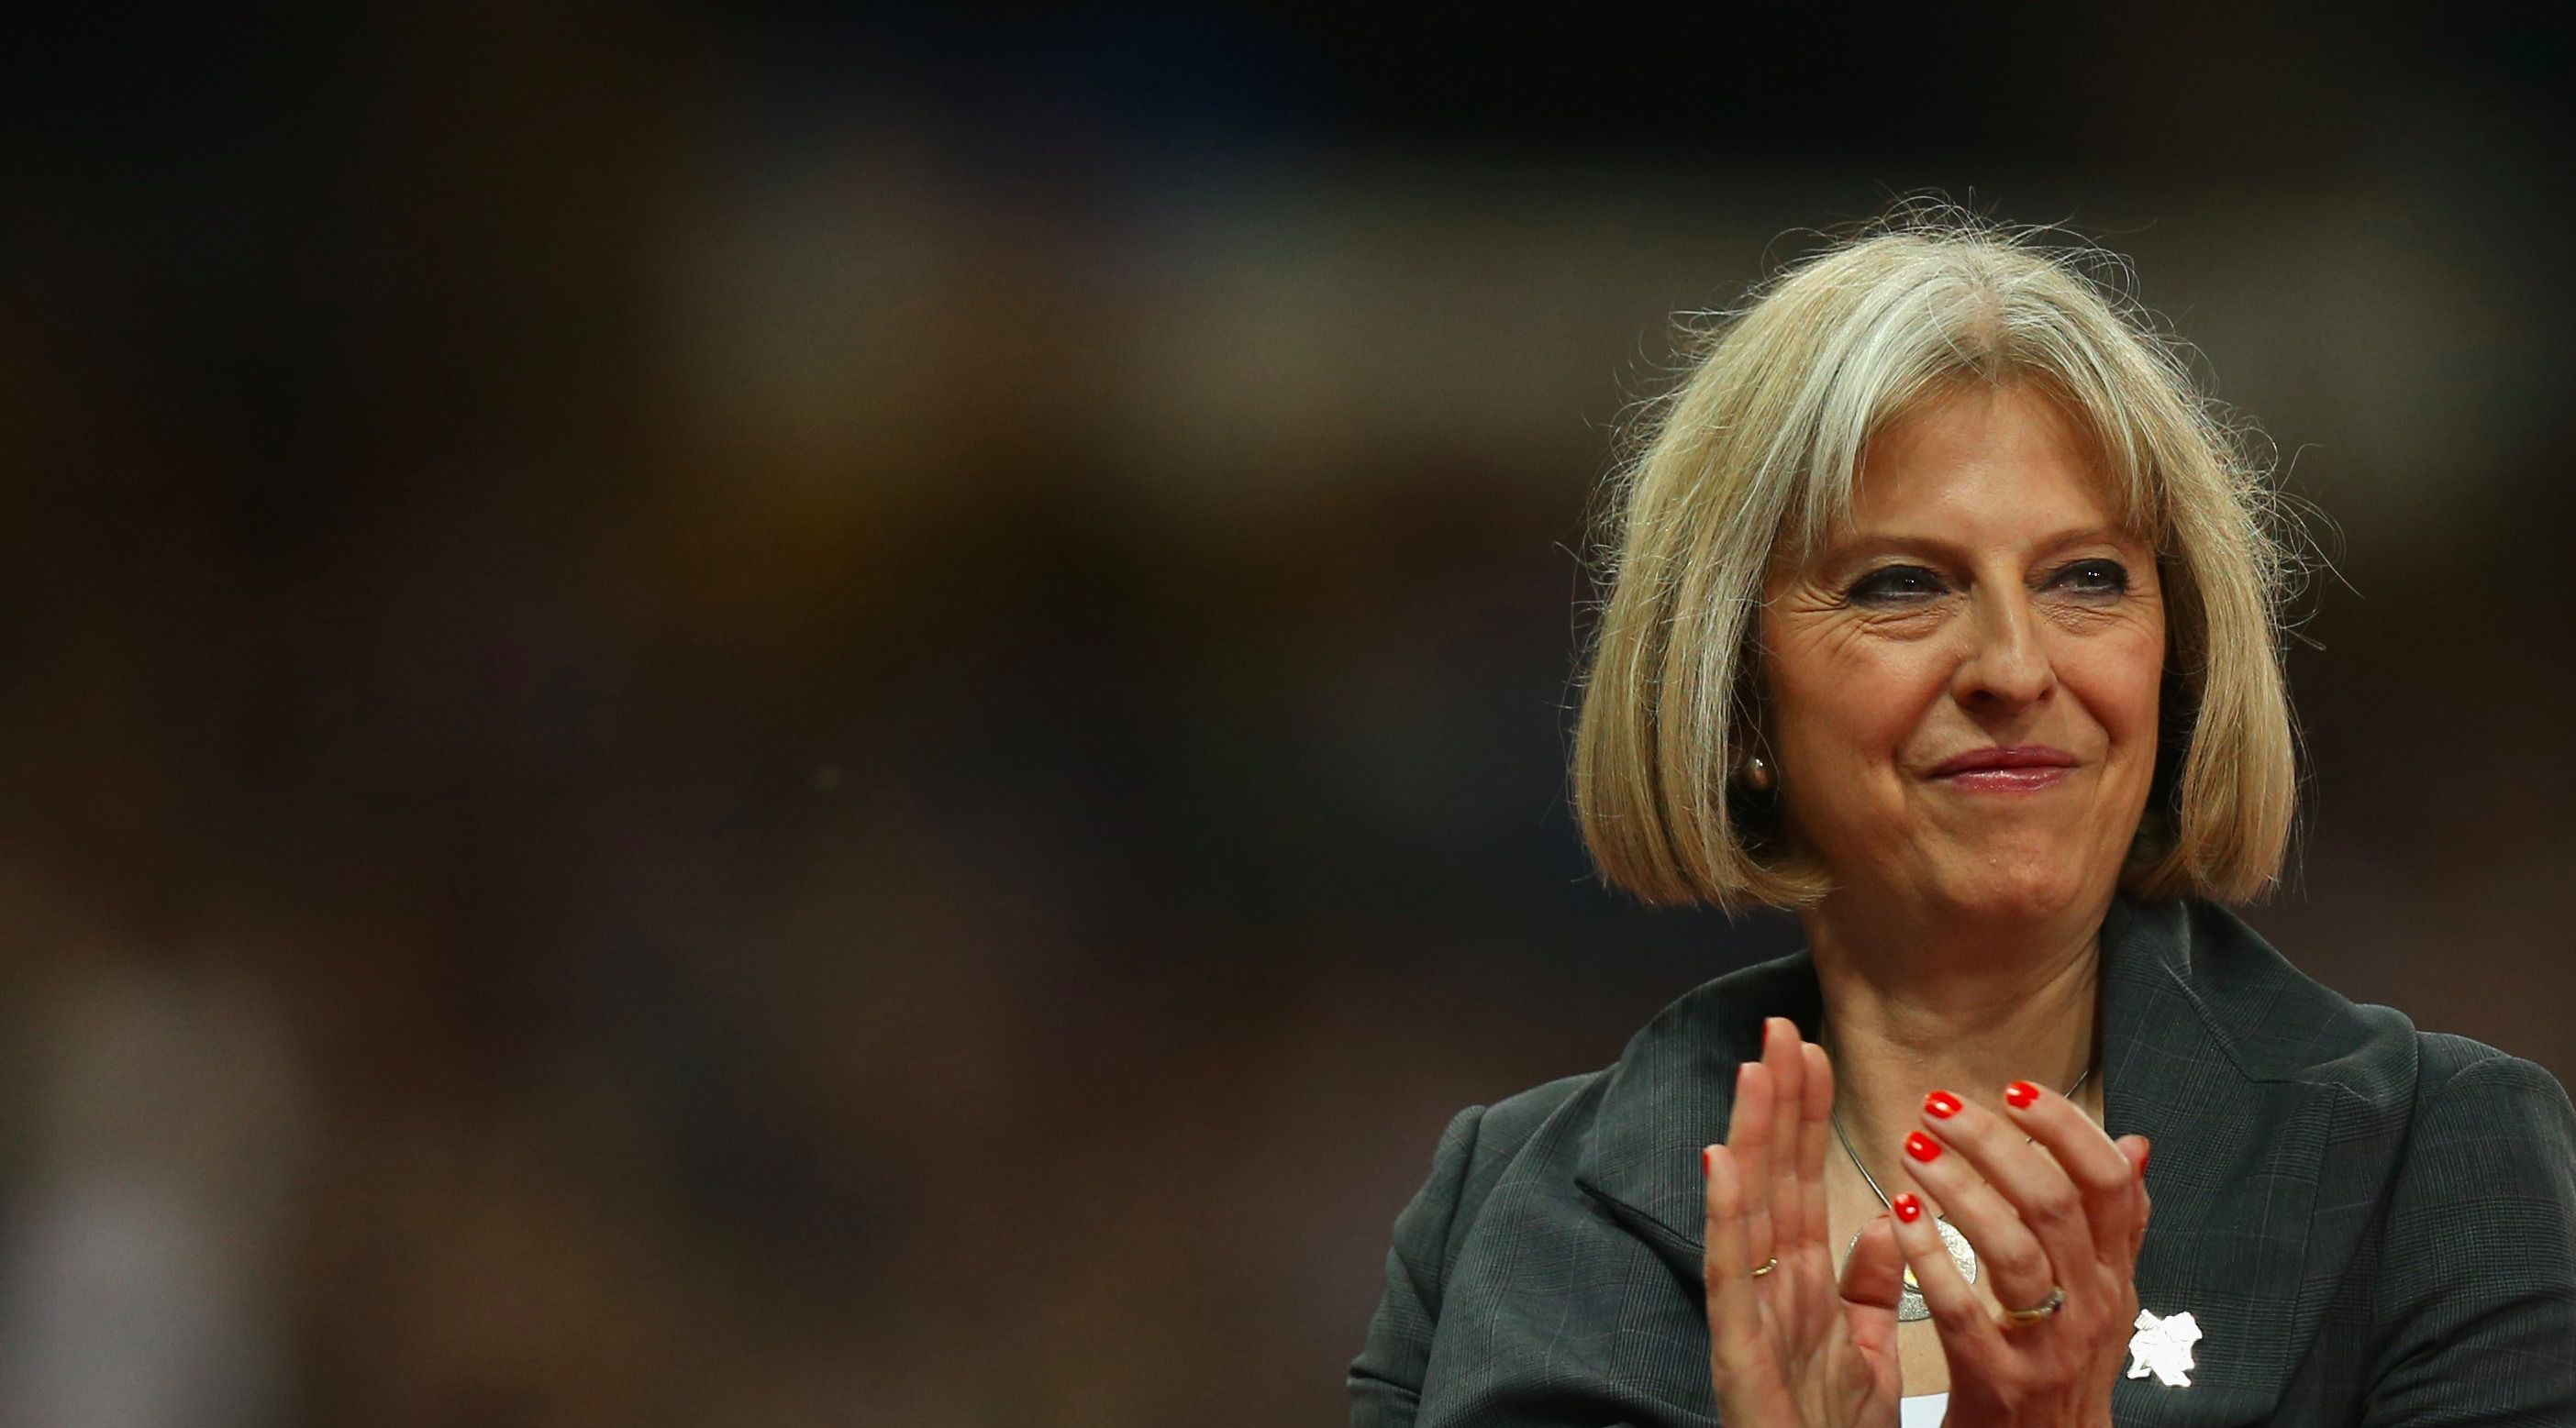 Theresa May is Britain's new Prime Minister: Here's what you need to know about her Theresa May is Britain's new Prime Minister: Here's what you need to know about her new foto